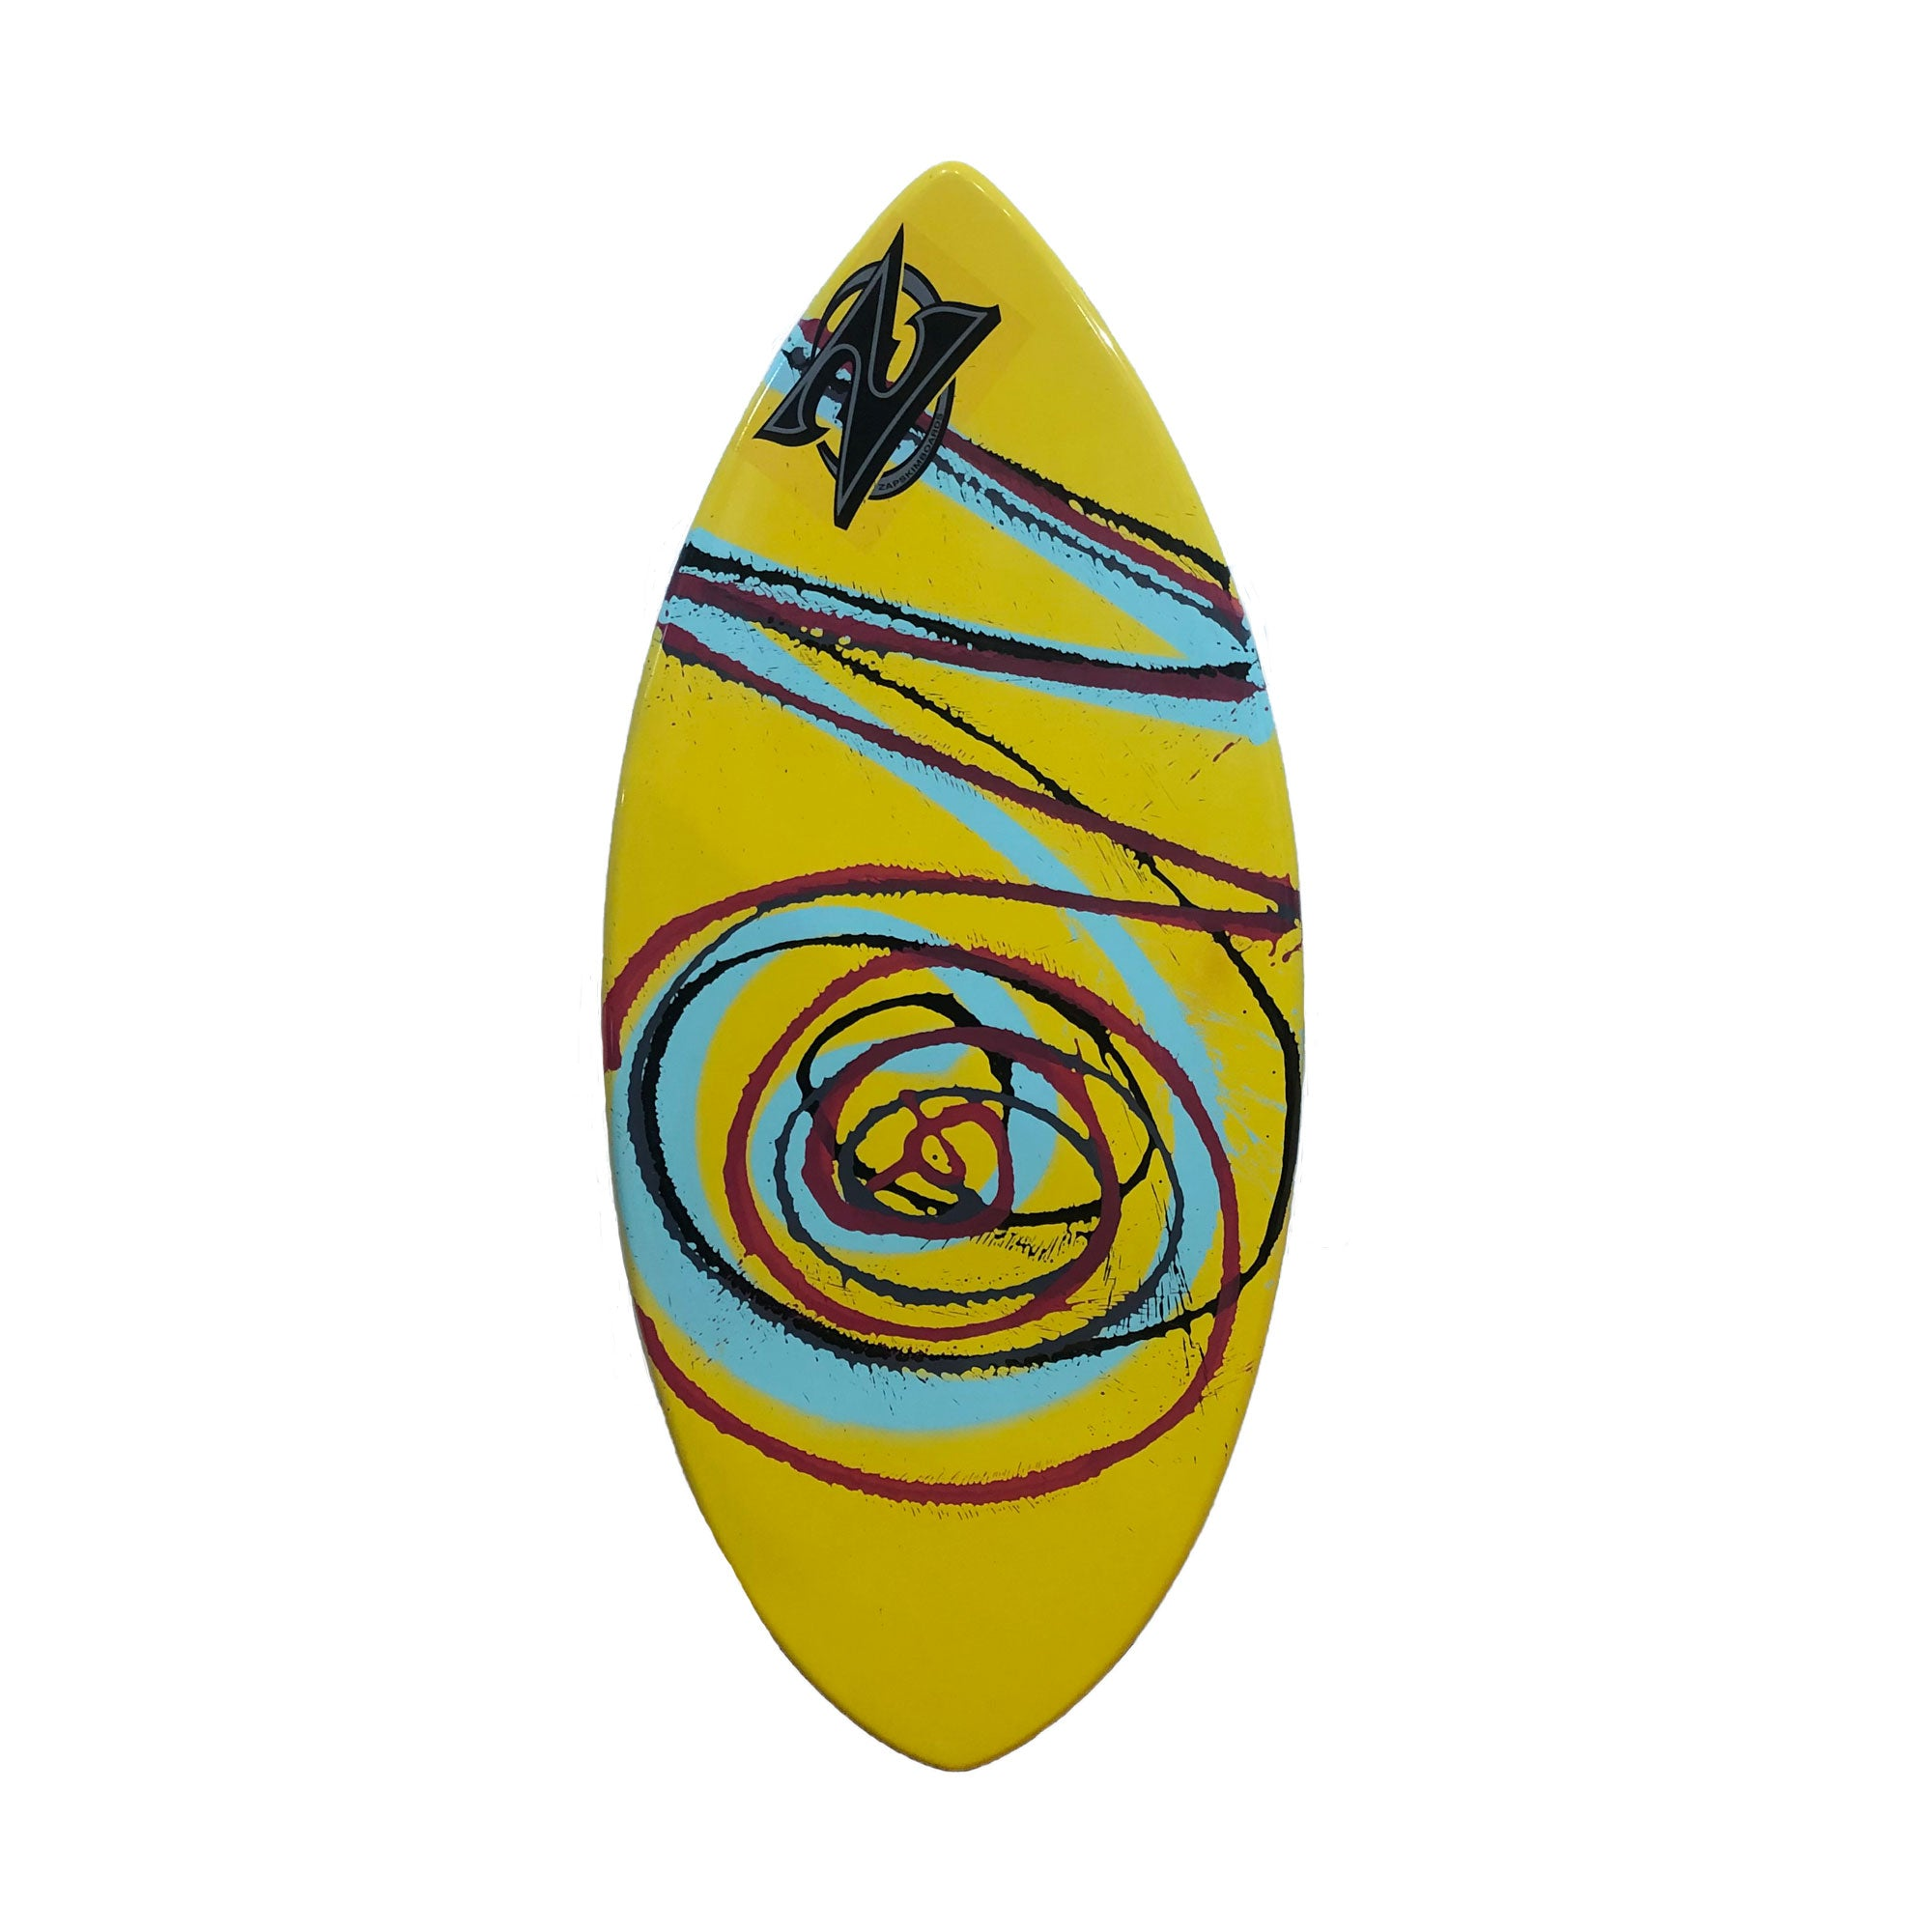 "Zap 45"" Wedge Skimboard - Yellow / Purple Swirl"